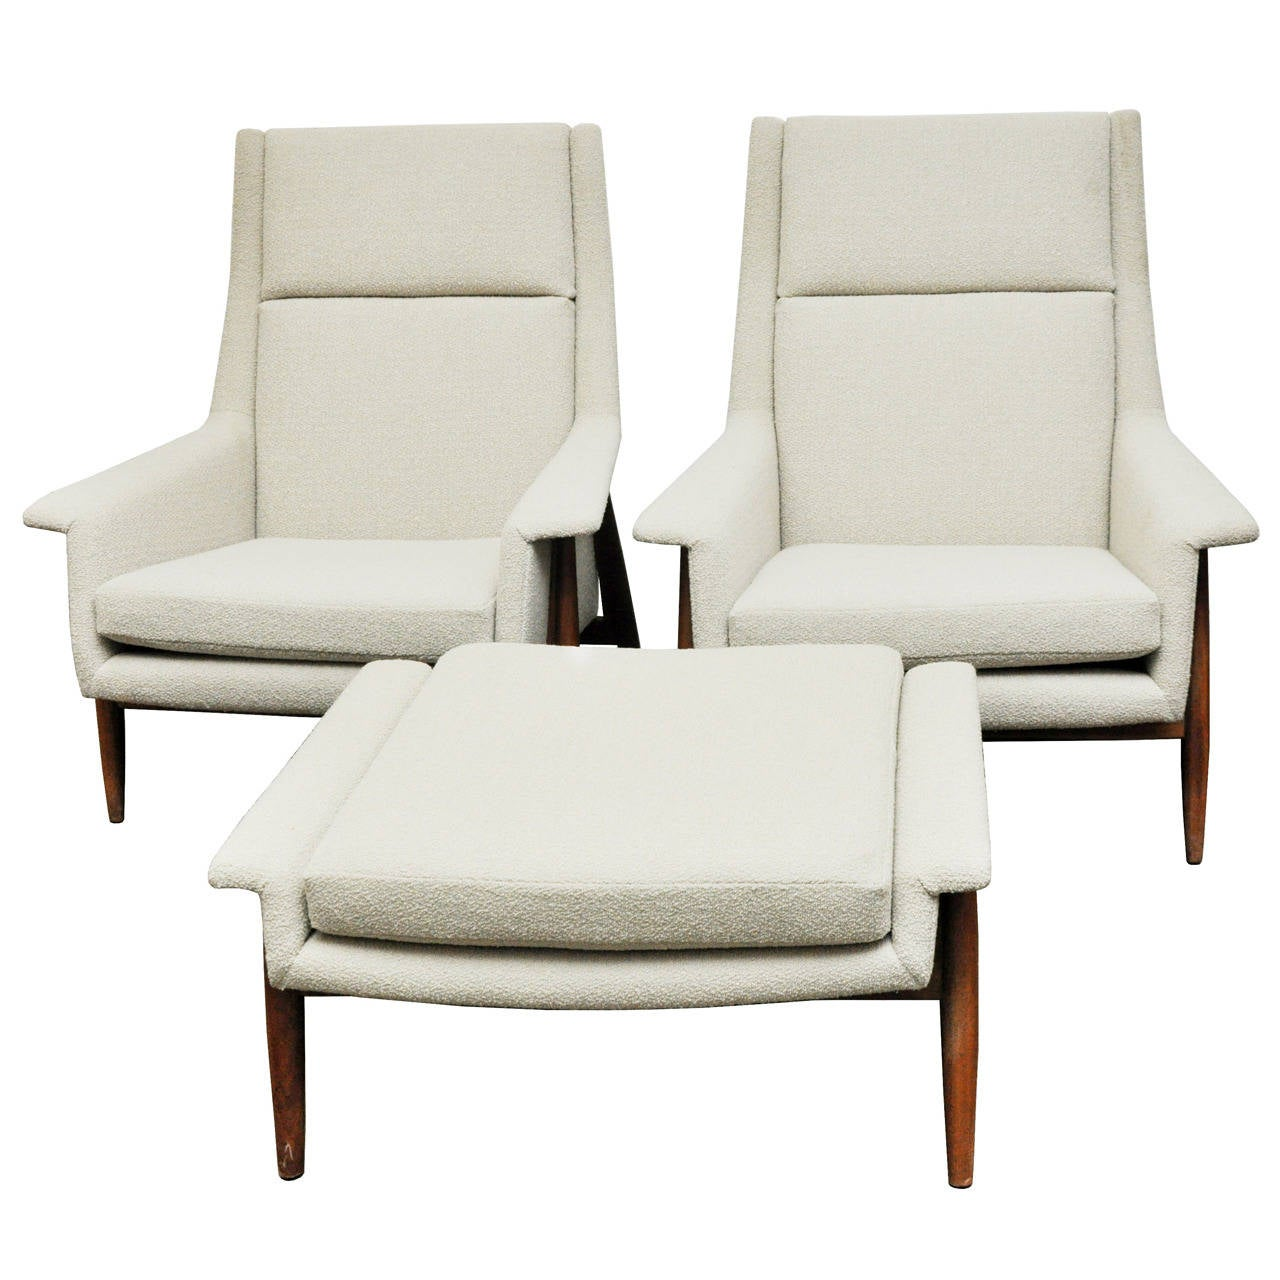 milo baughman chair coleman lumbar quattro chairs and ottoman for thayer coggin at 1stdibs